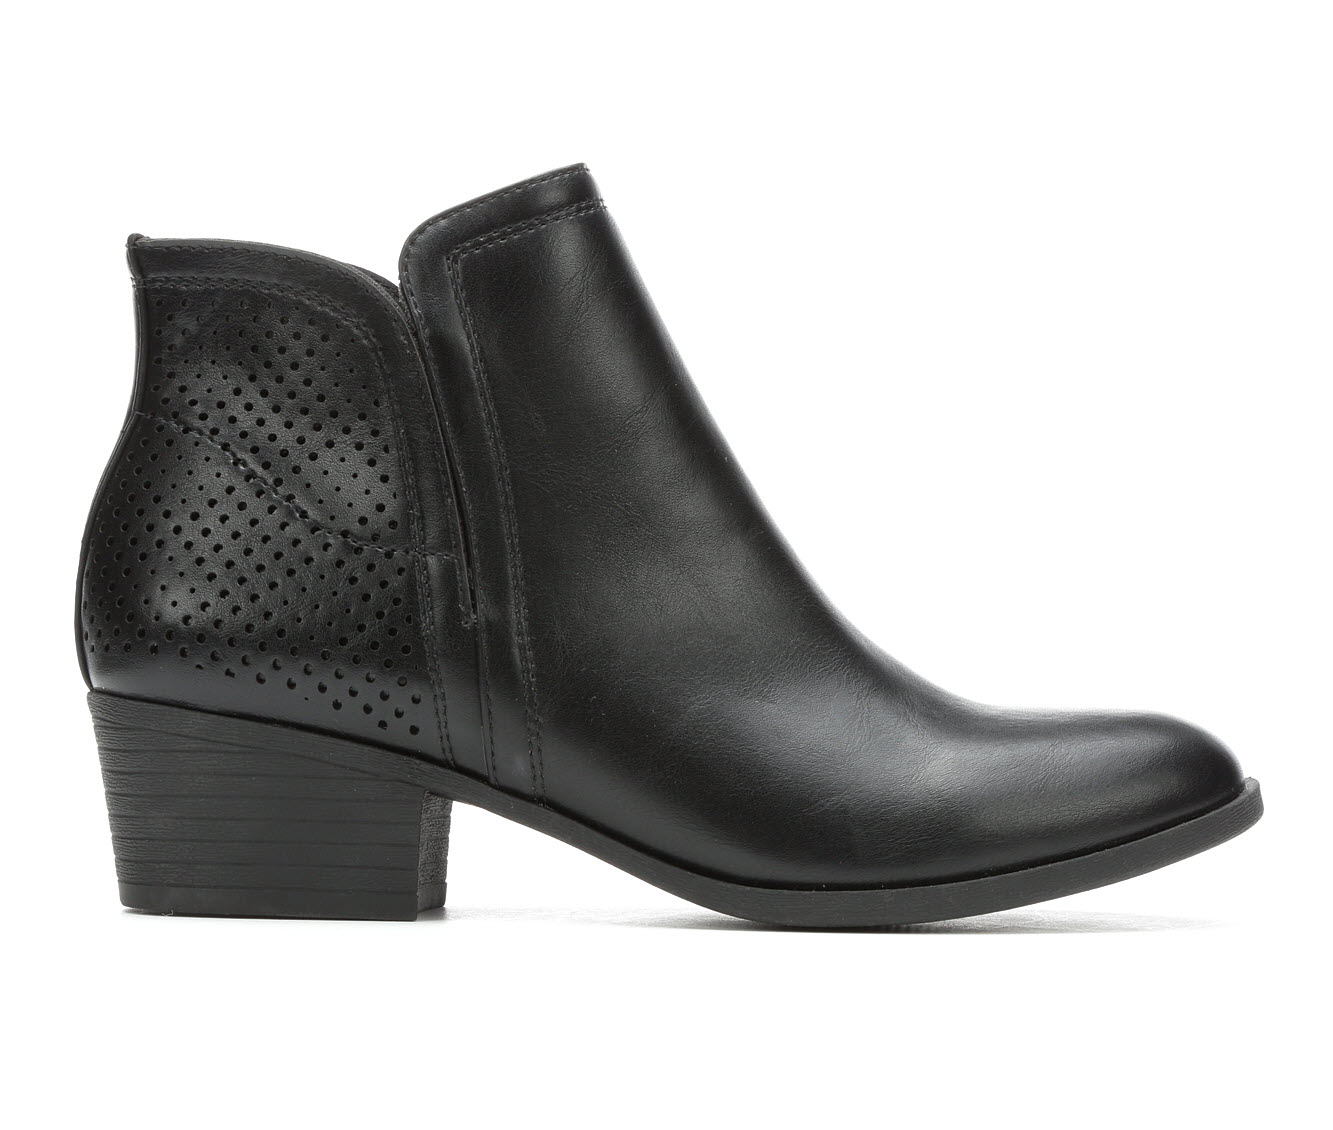 Madden Girl Honorr Women's Boot (Black Faux Leather)